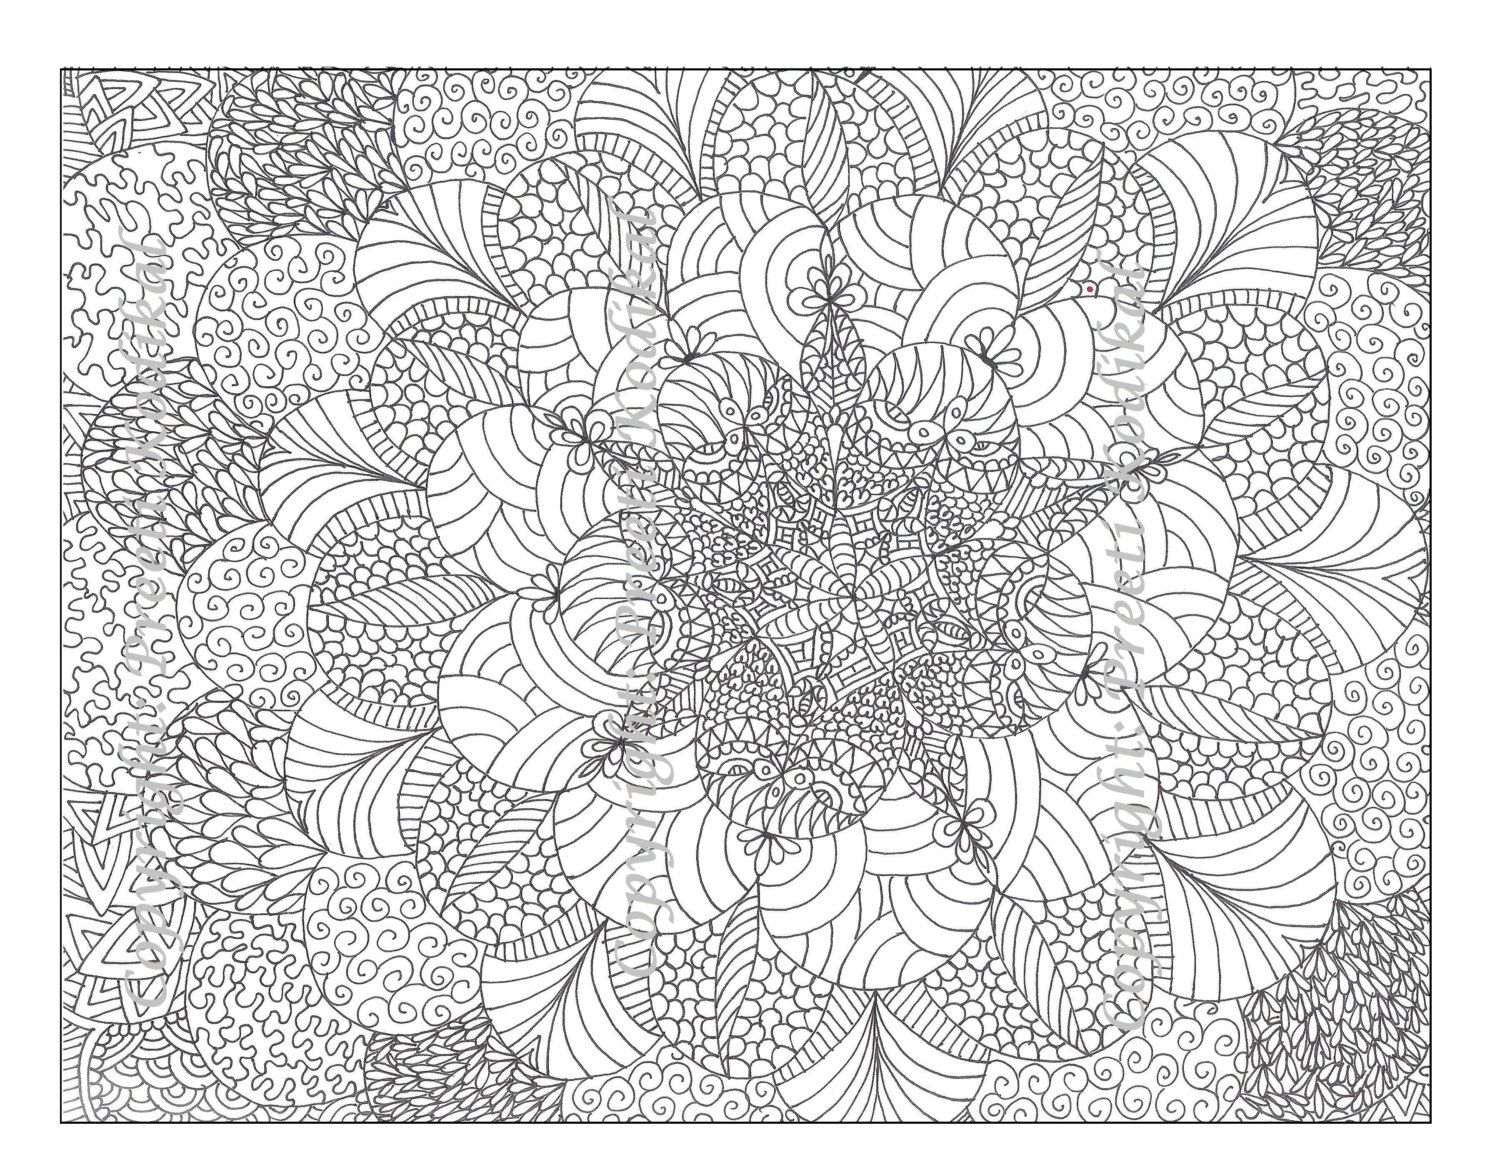 Pen Illustration Printable Coloring Page Zentangle Inspired Henna Or Mehndi Inspired I Detailed Coloring Pages Abstract Coloring Pages Geometric Coloring Pages